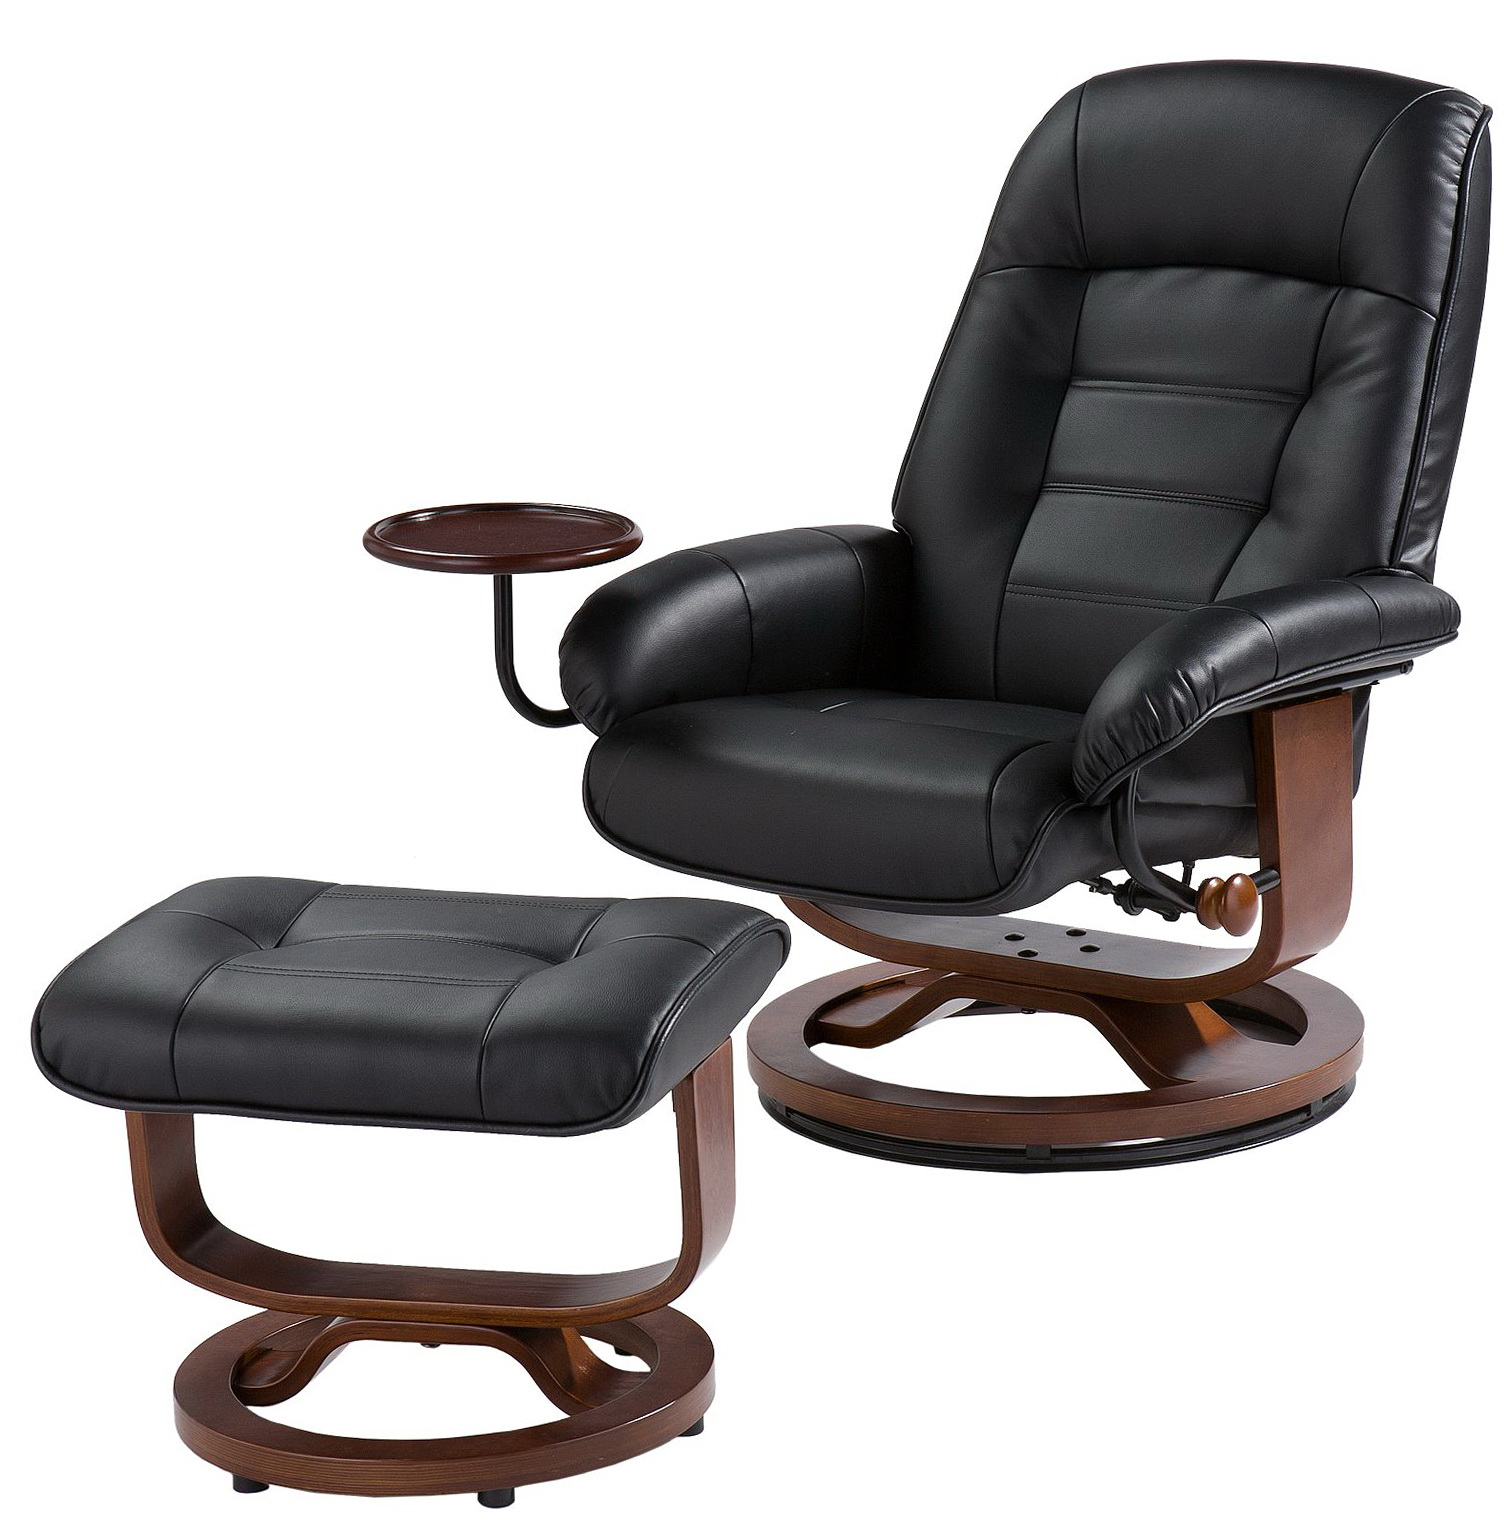 Leather Recliner With Ottoman Canada Home Design Ideas